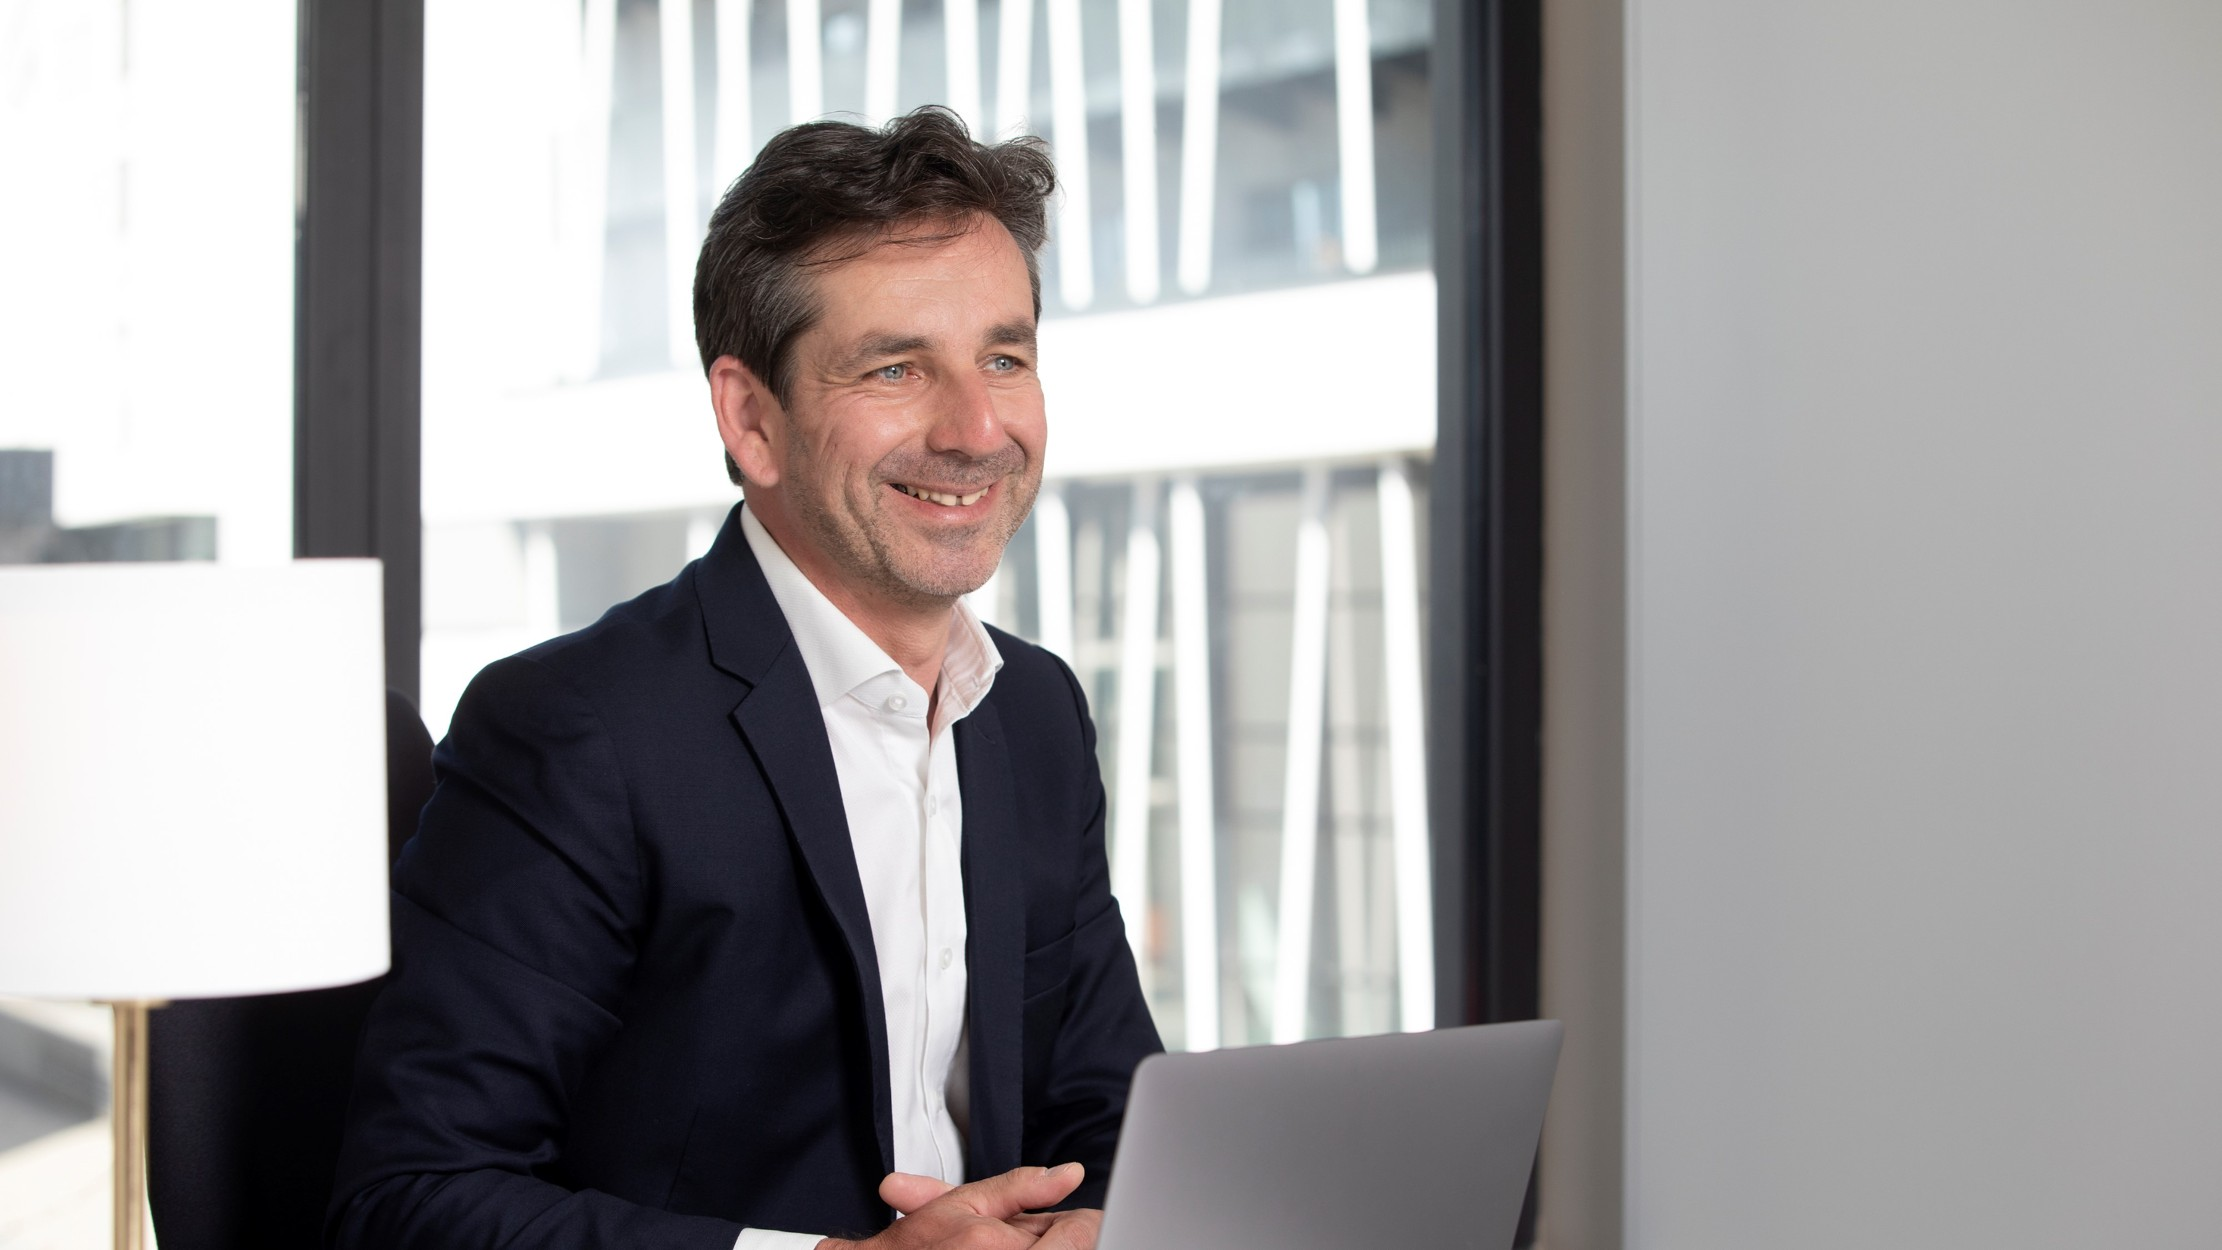 Dominique Périlleux, Chief Operating Officer of FundsDLT